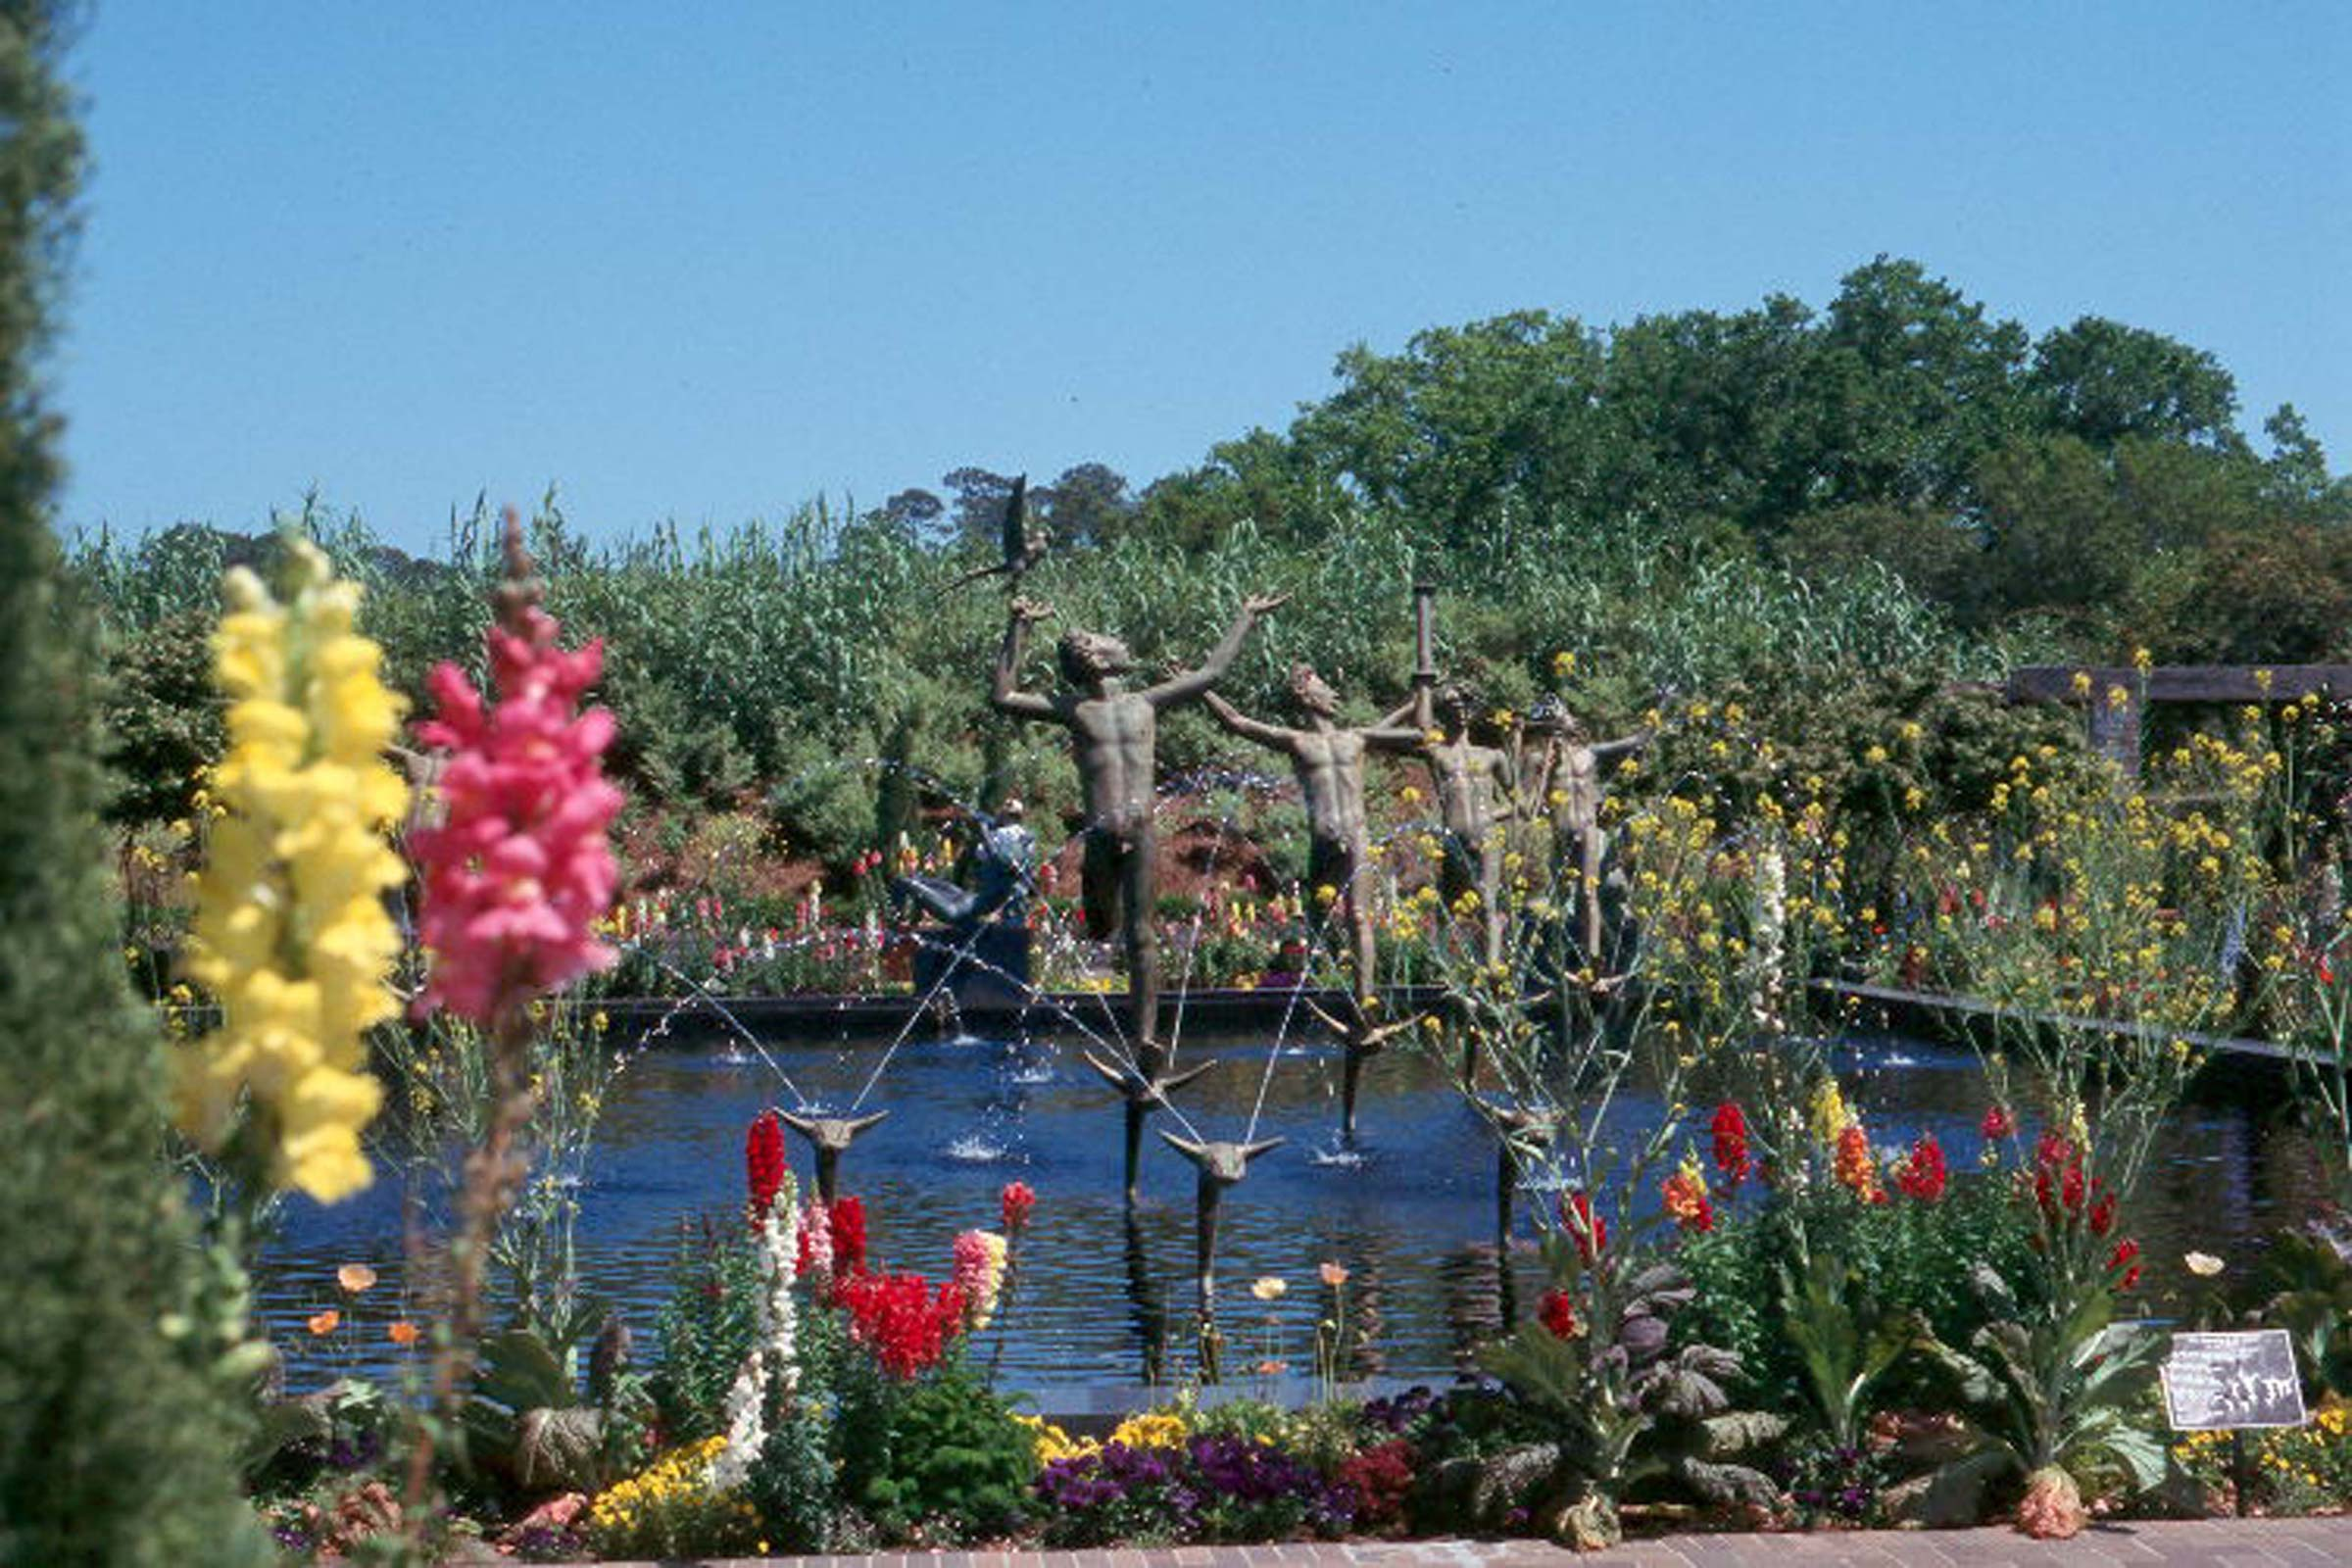 See spring in full bloom at Brookgreen Gardens in the Myrtle Beach area of South Carolina.